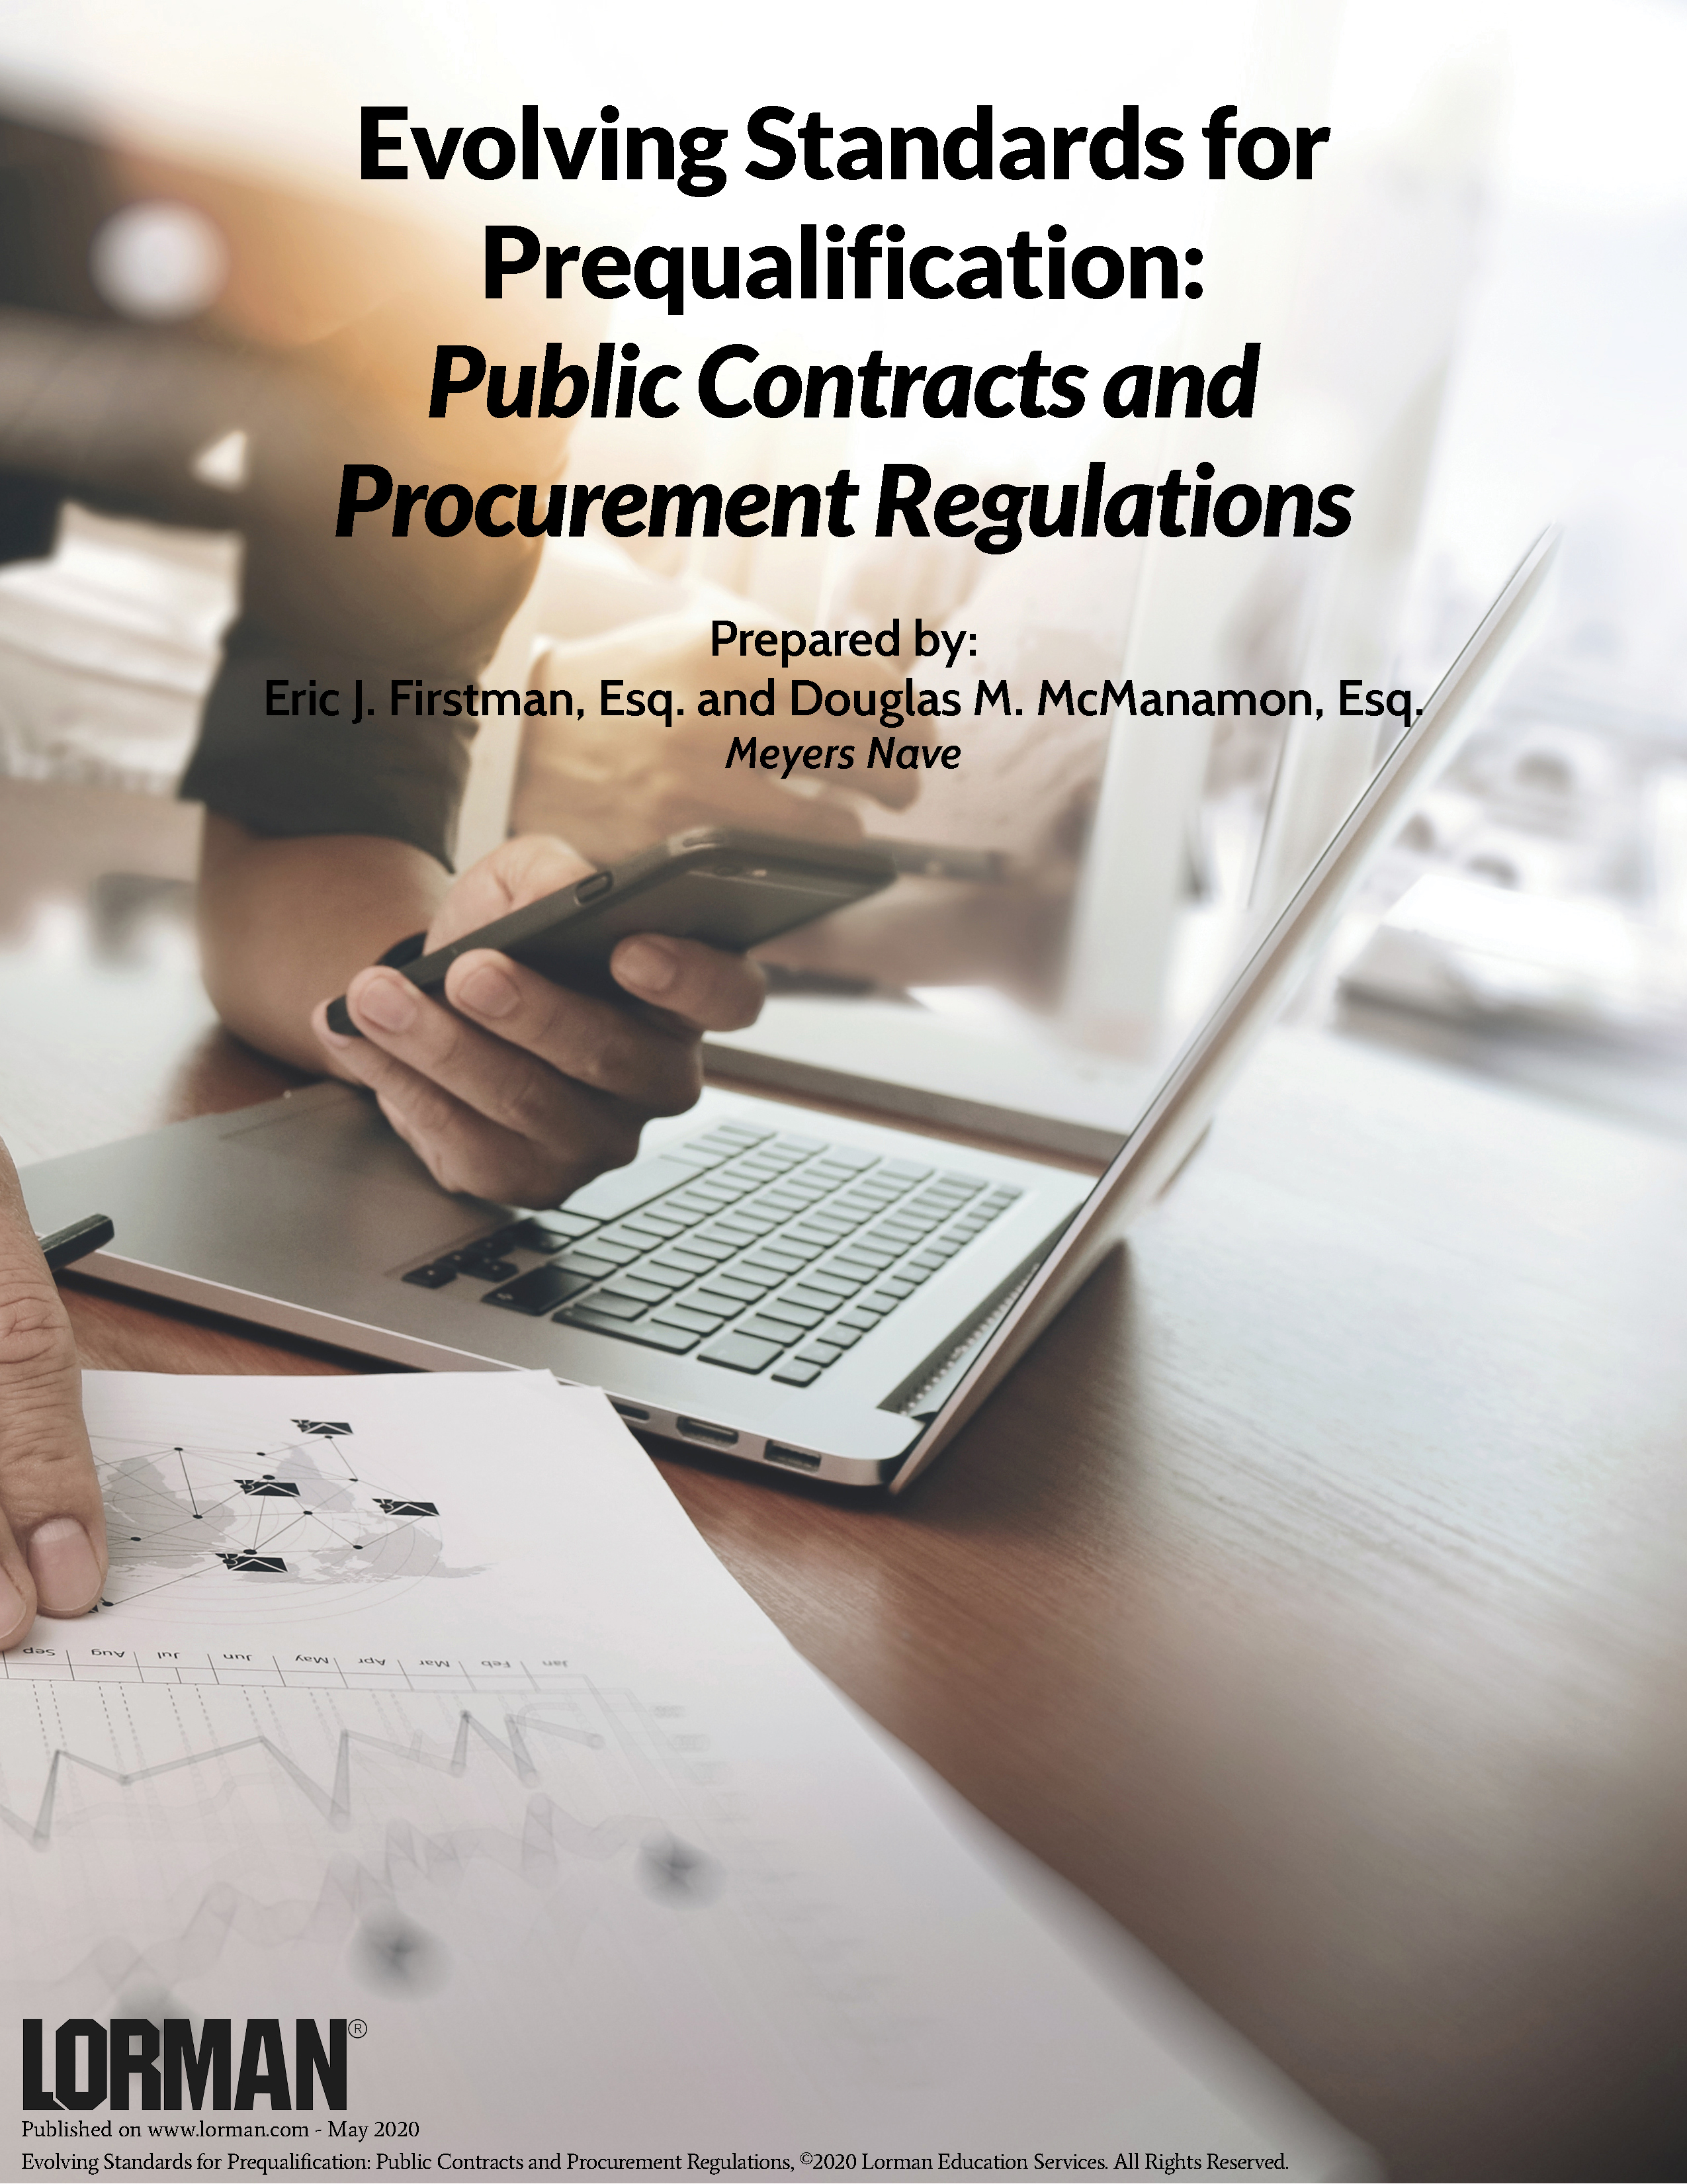 Evolving Standards for Prequalification: Public Contracts and Procurement Regulations